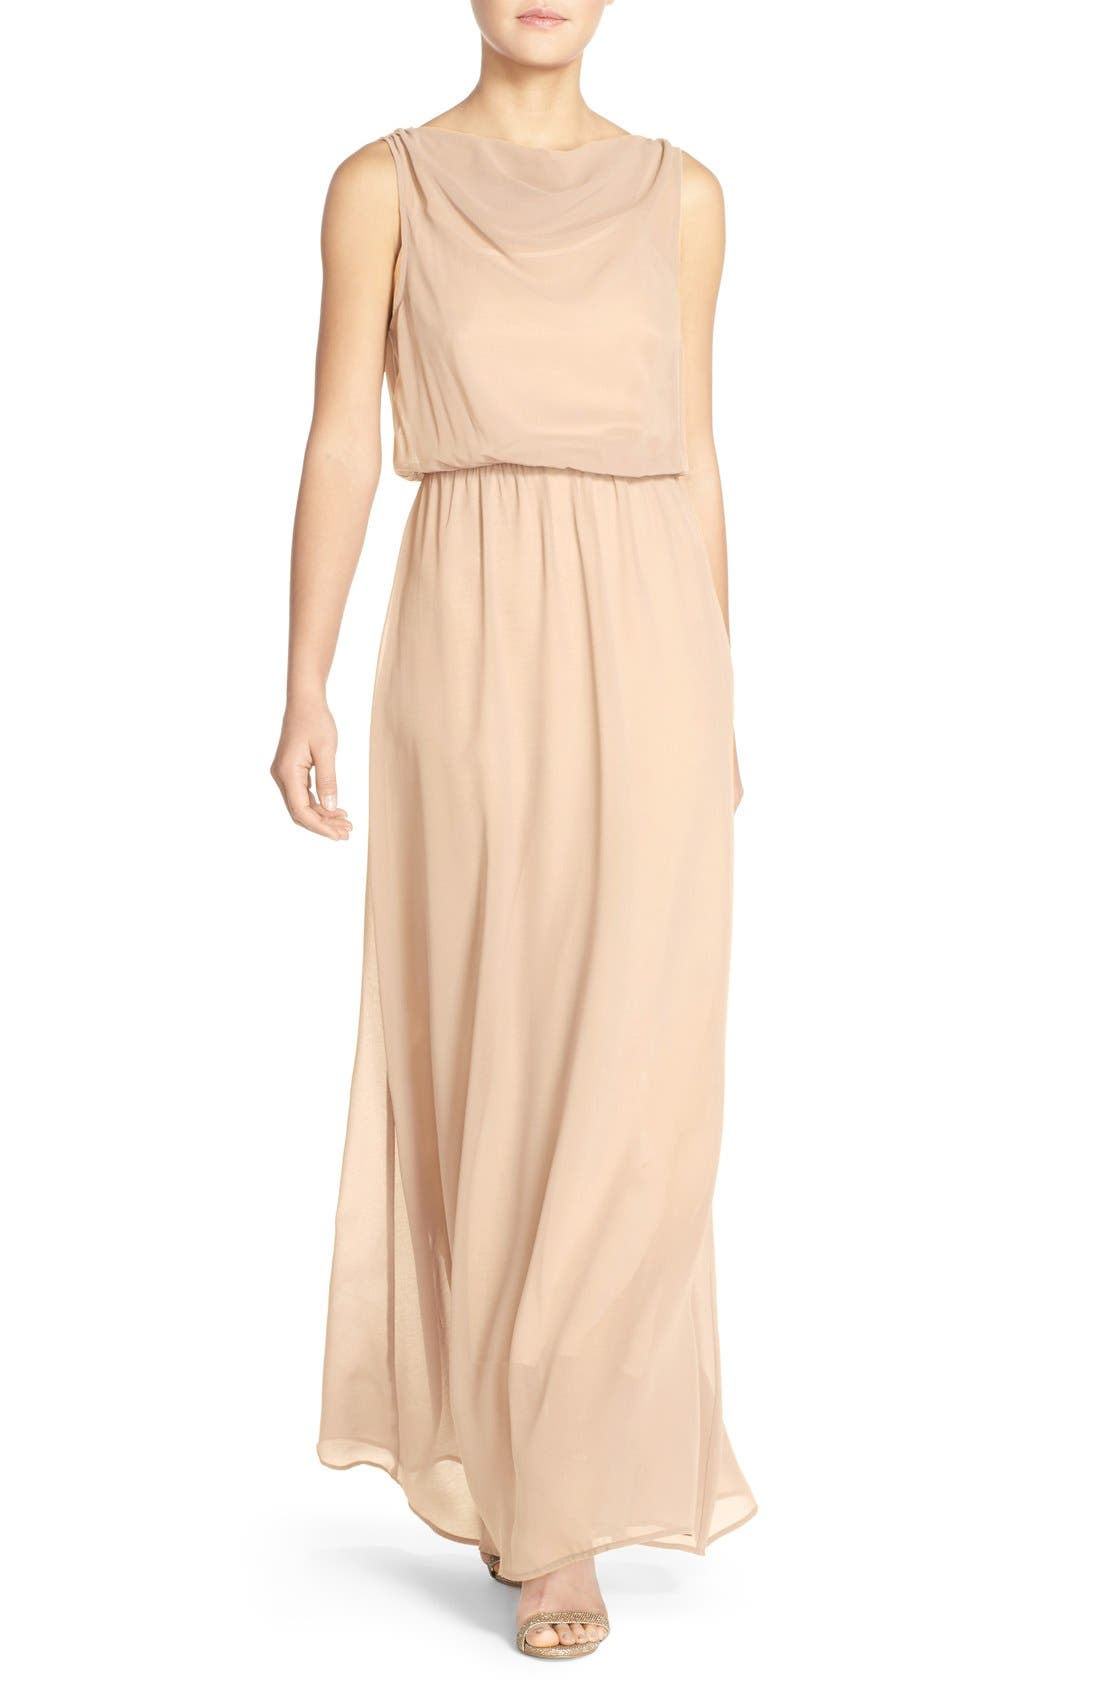 Paper Crown by Lauren Conrad 'Springfield' Cowl Neck Chiffon Gown